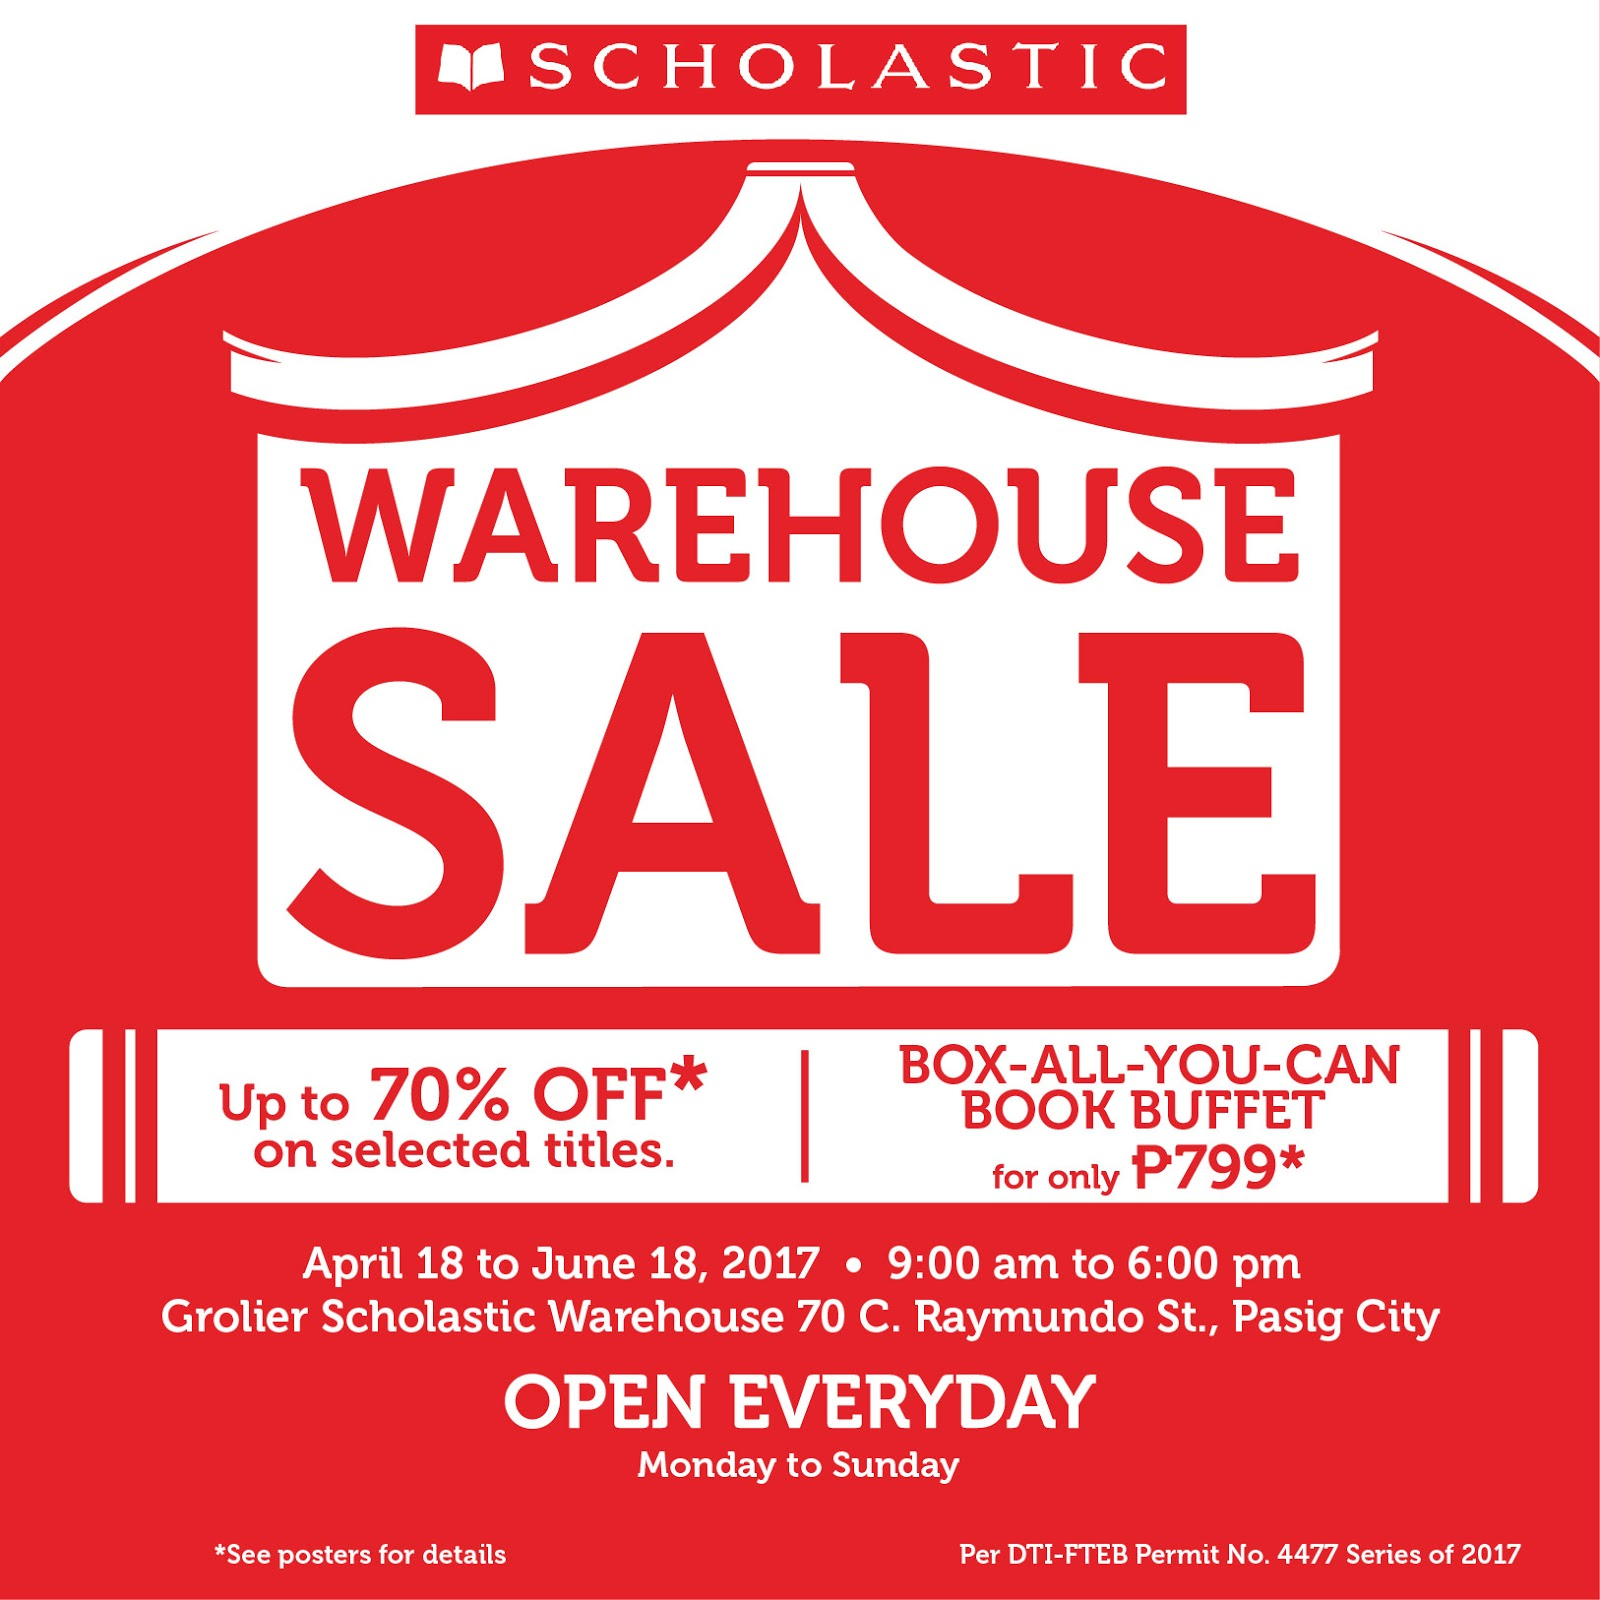 Book fair chairpeople who have Scholastic Dollars to spend at the Warehouse Sale will receive $25 off their purchase of $ or more! All items purchased with Scholastic Dollars will be sold at the full cover/stickered price and do not qualify for buy one, get one free. Sales tax charged if applicable.